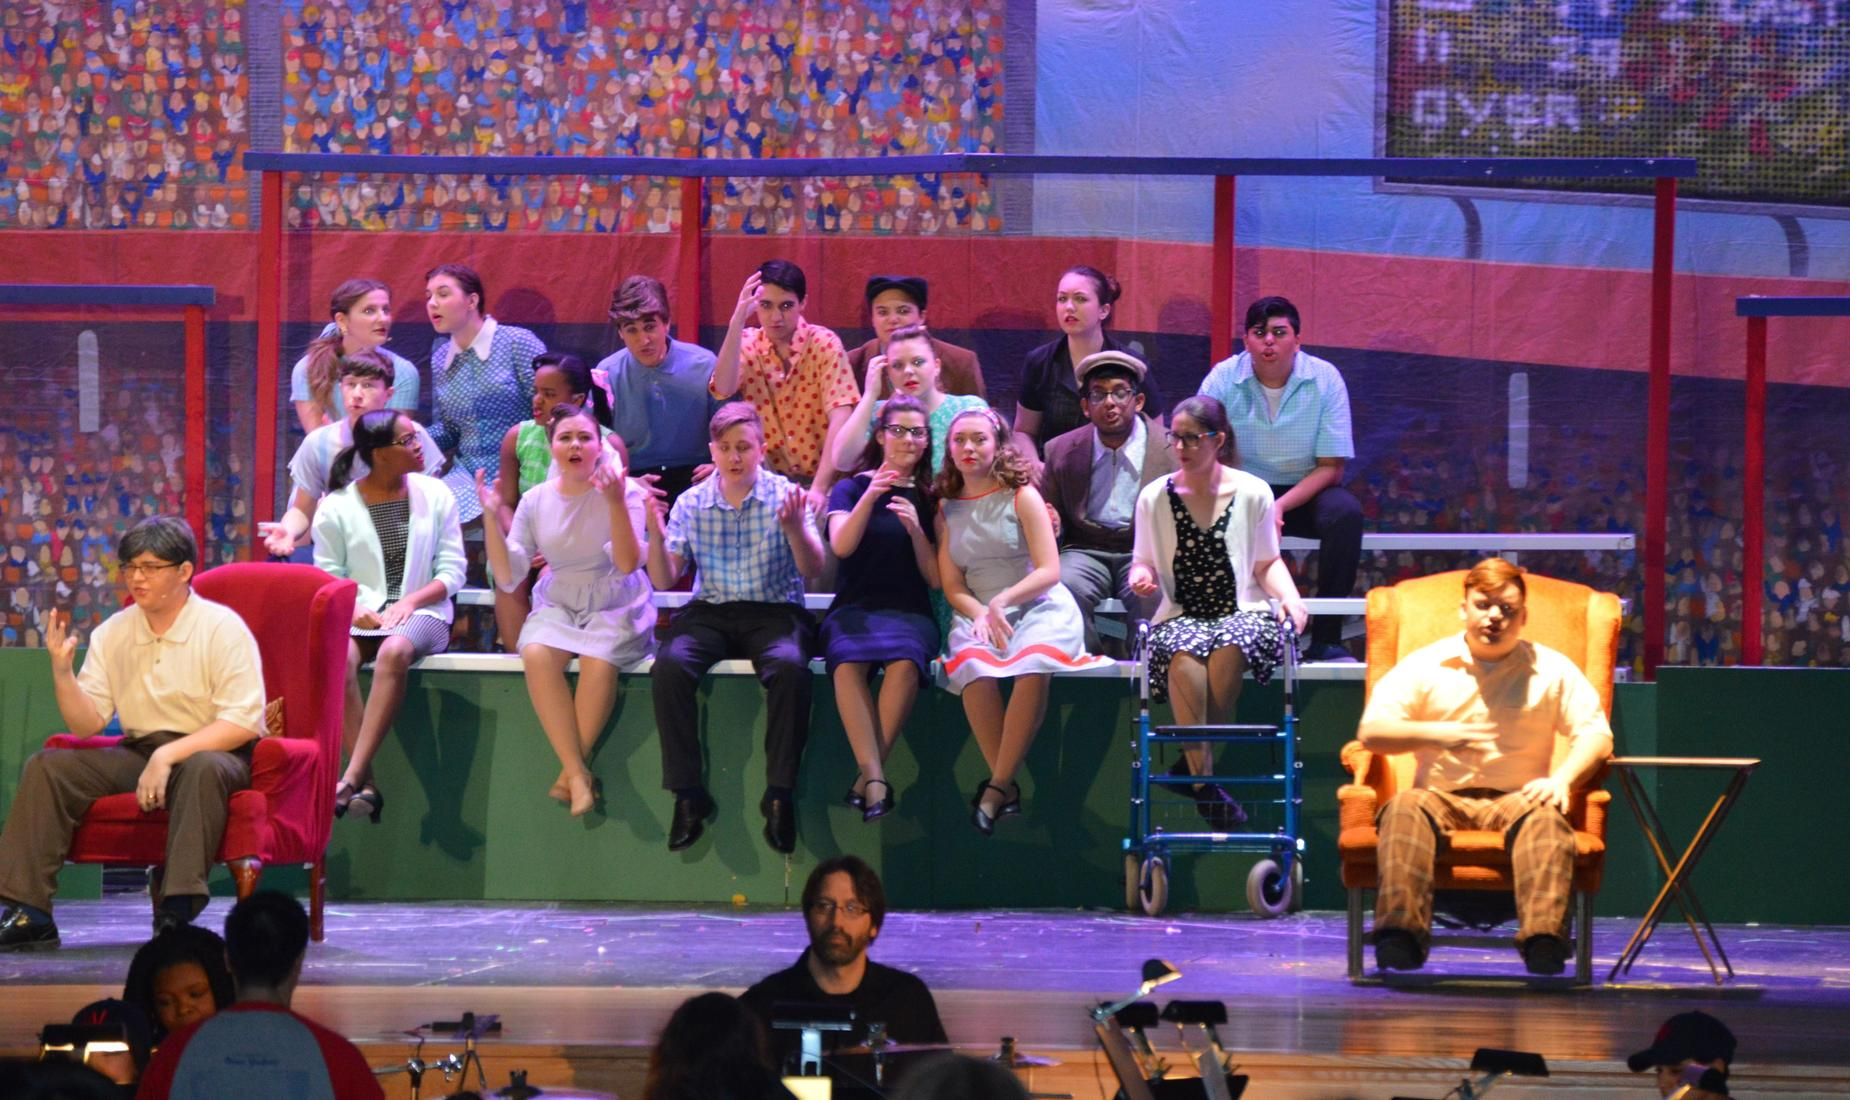 19 BHS drama club students perform Damn Yankees. They are sitting on bleachers with 2 sitting on chairs. The background looks like a baseball stadium with fans in the stands.